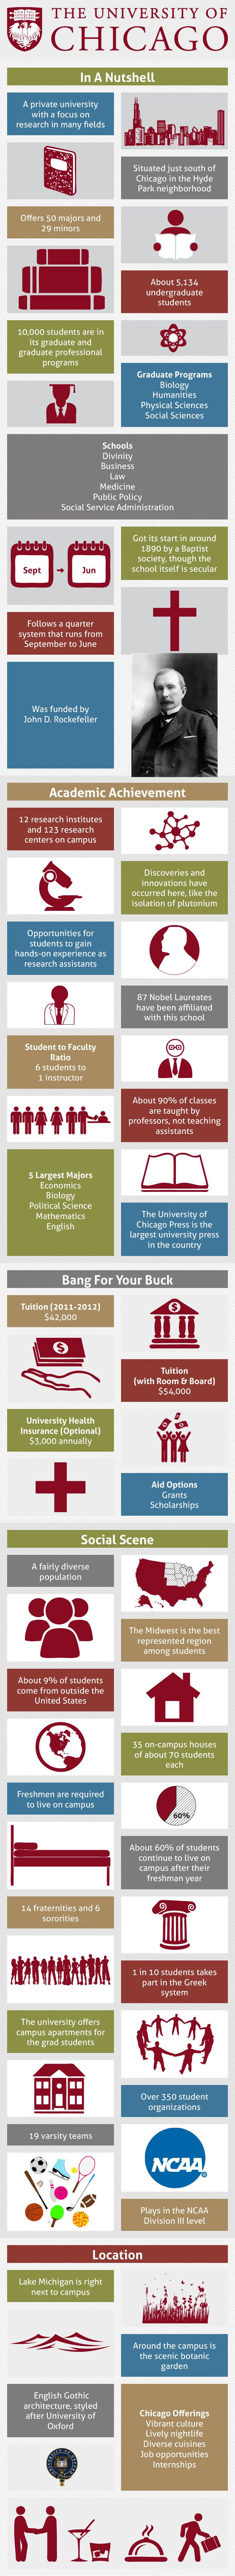 Best US Universities Images On Pinterest College Life - Largest universities in usa